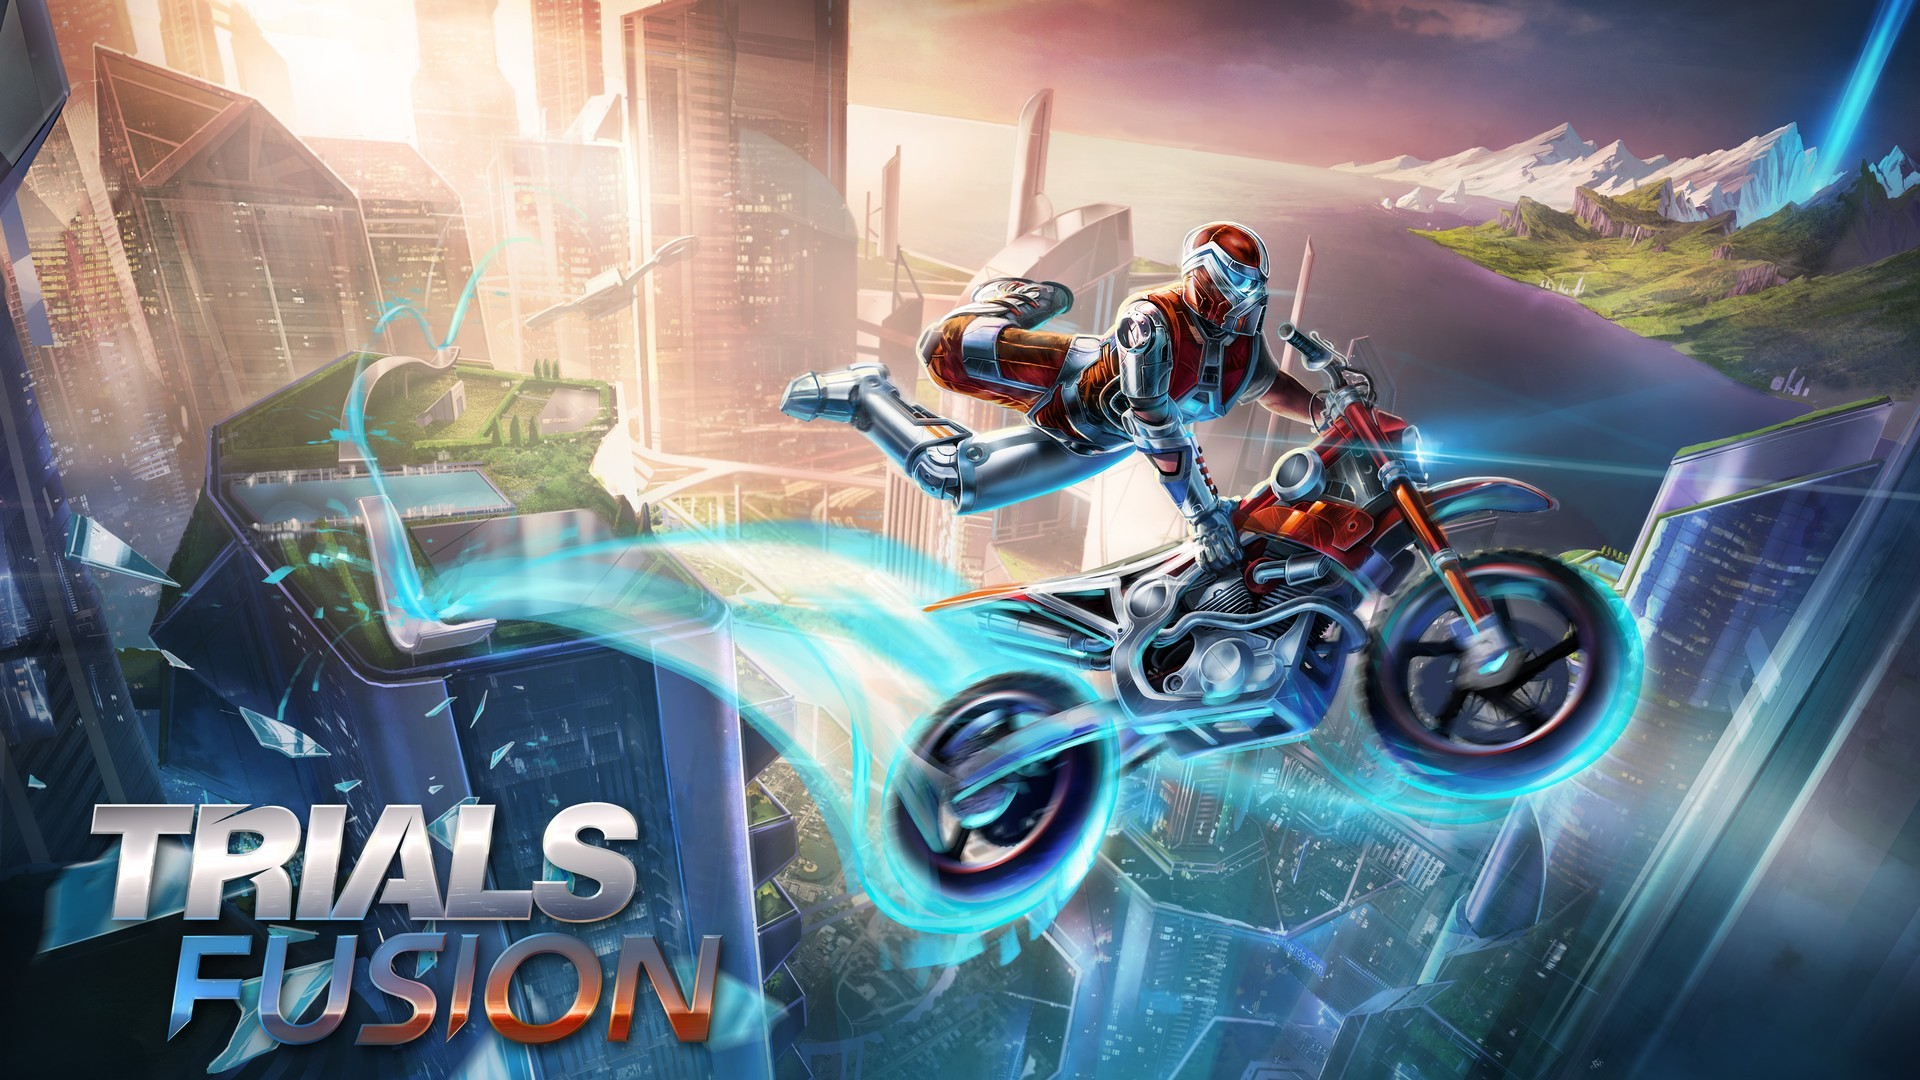 trials-fusion-video-game-hd-wallpaper-54259-55992-hd-wallpapers.jpg